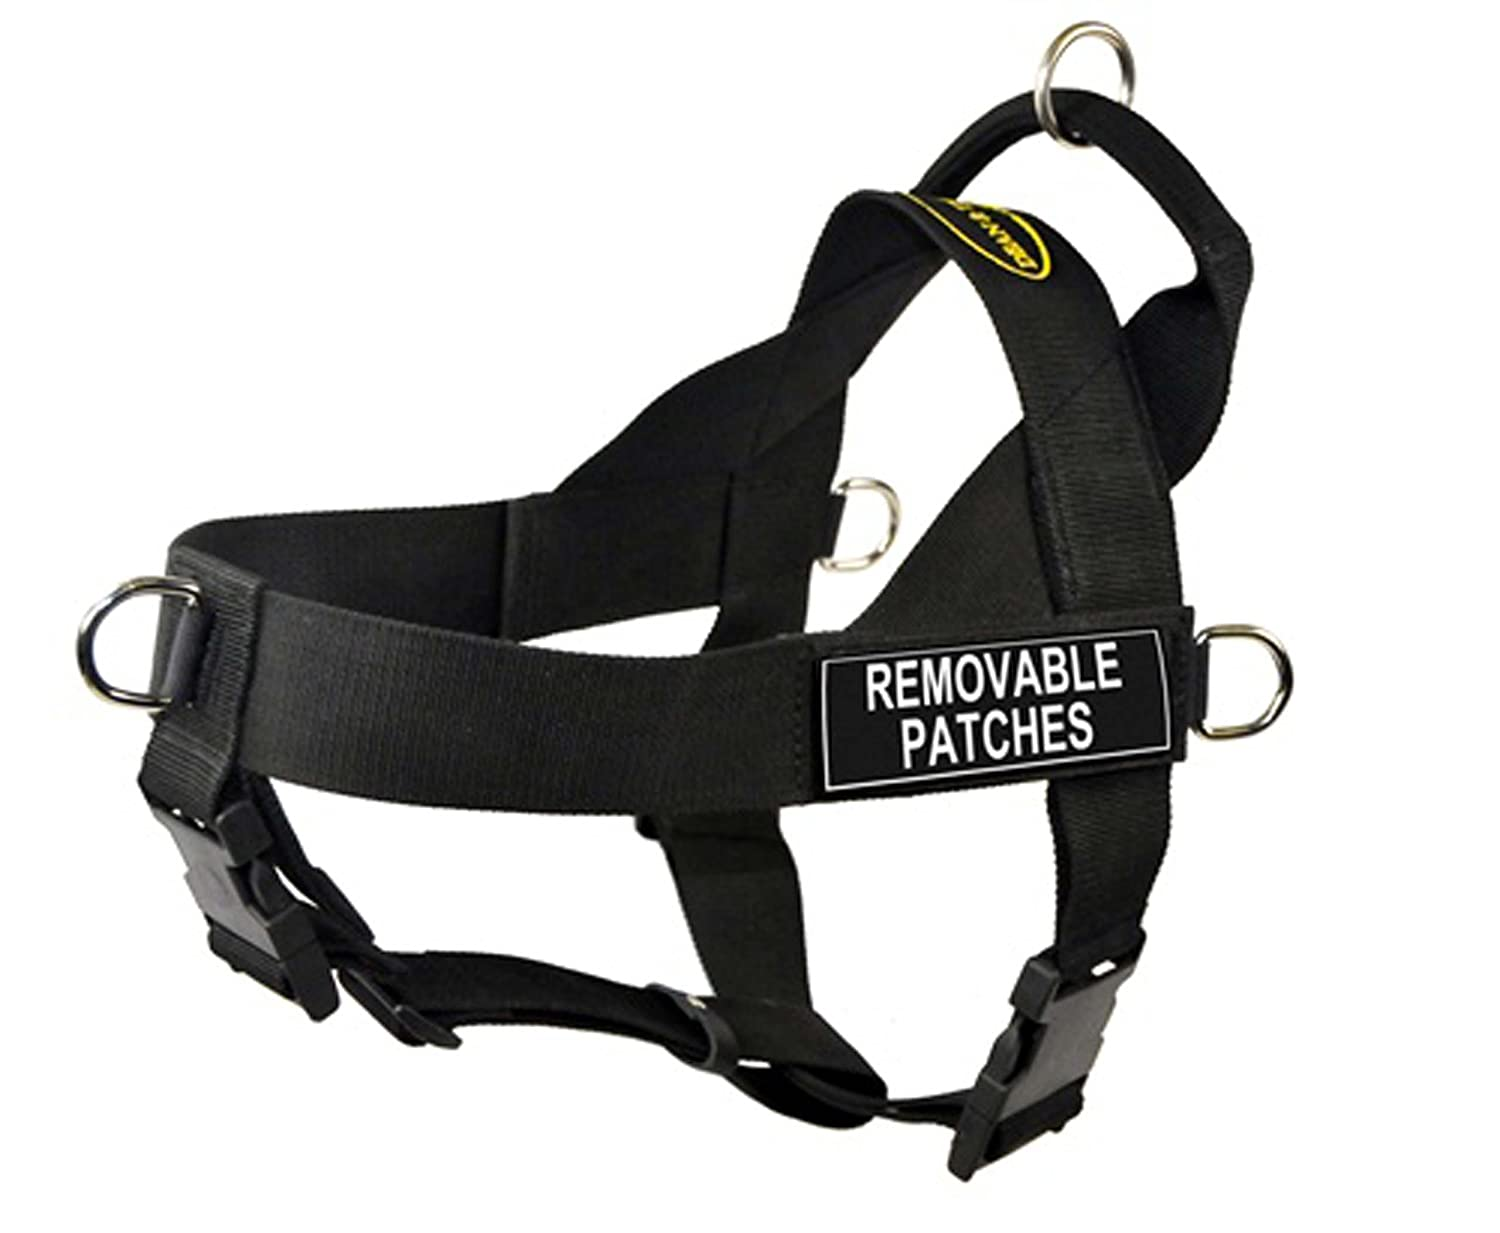 DT Universal No Pull Dog Harness, Clear Patches, Black, X-Large, Fits Girth Size  36-Inch to 47-Inch